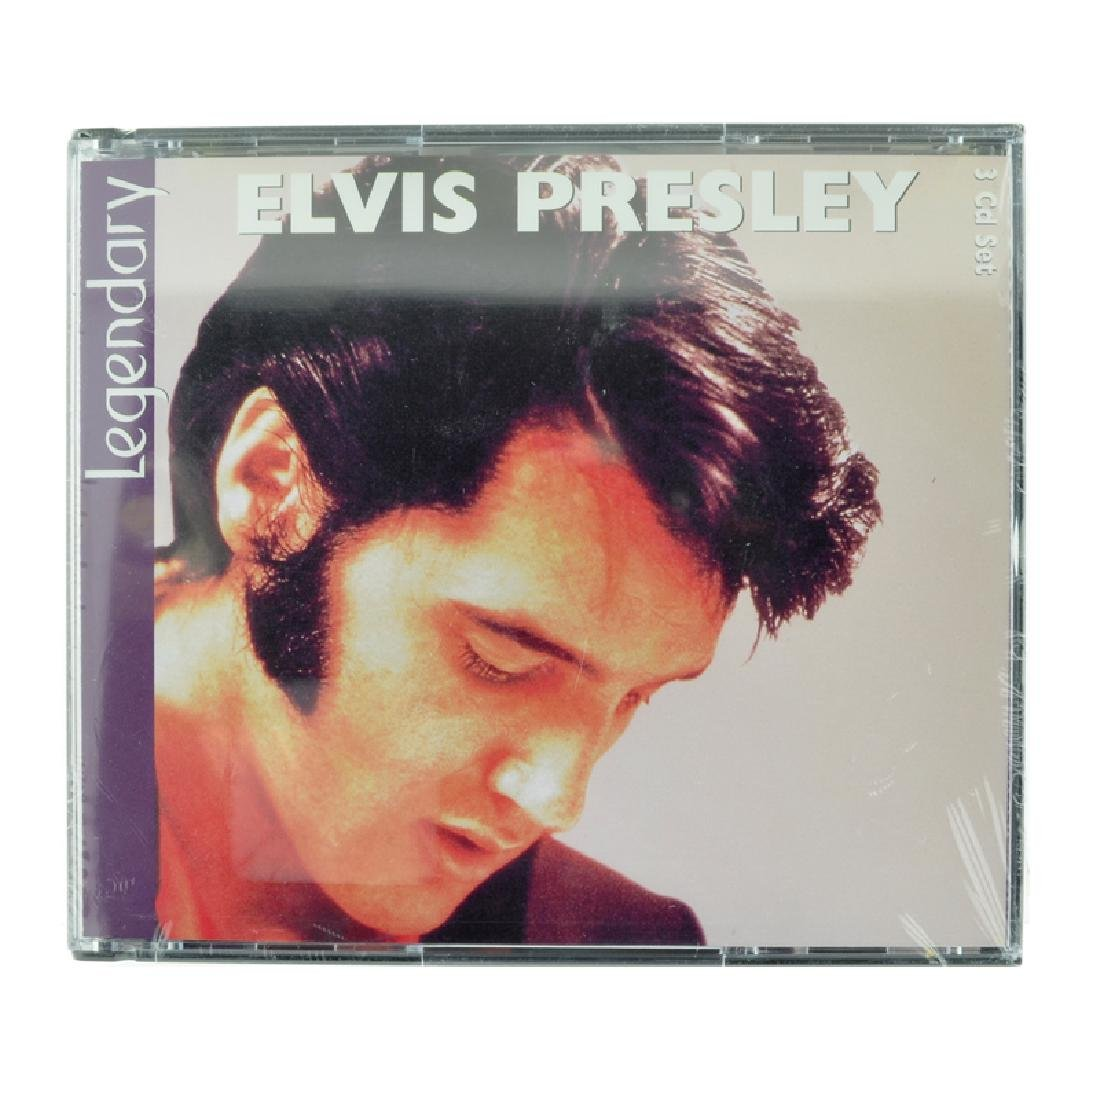 Elvis Presley 3 CD's Legendary (Unopen)